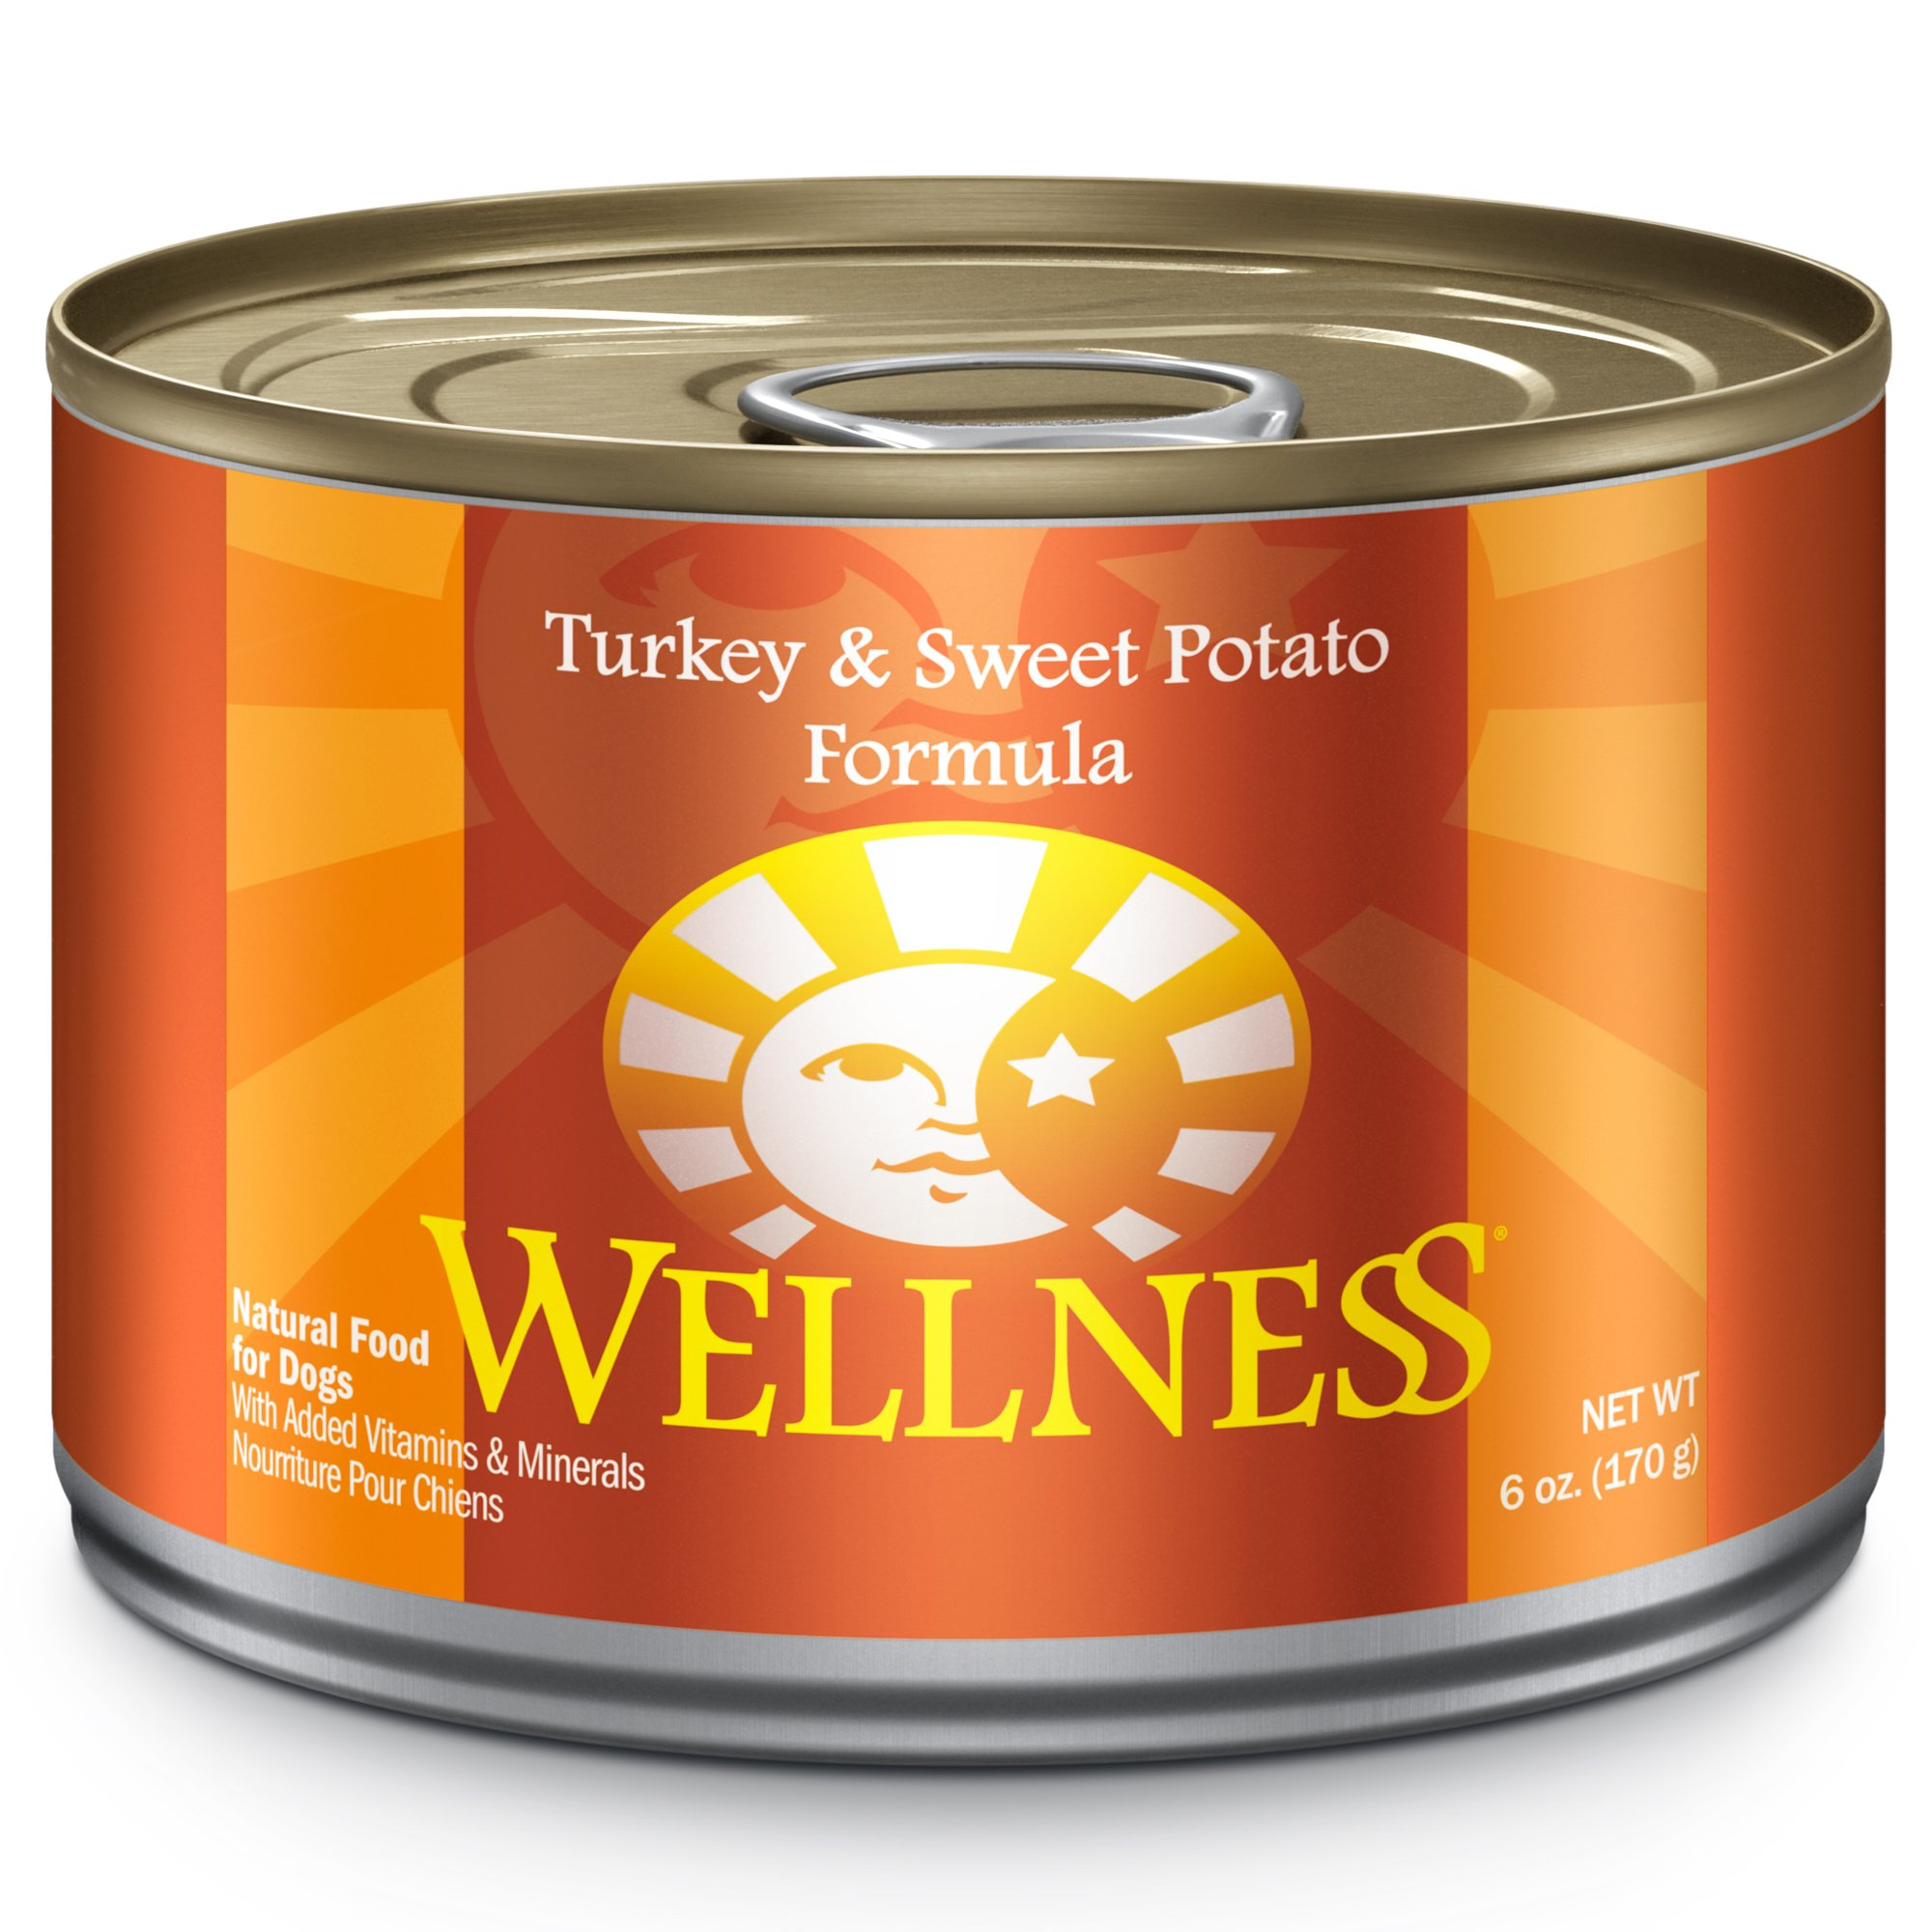 Wellness Complete Health Natural Wet Canned Dog Food, Turkey & Sweet Potato, 6-Ounce Can (Pack Of 24) by Wellness Natural Pet Food